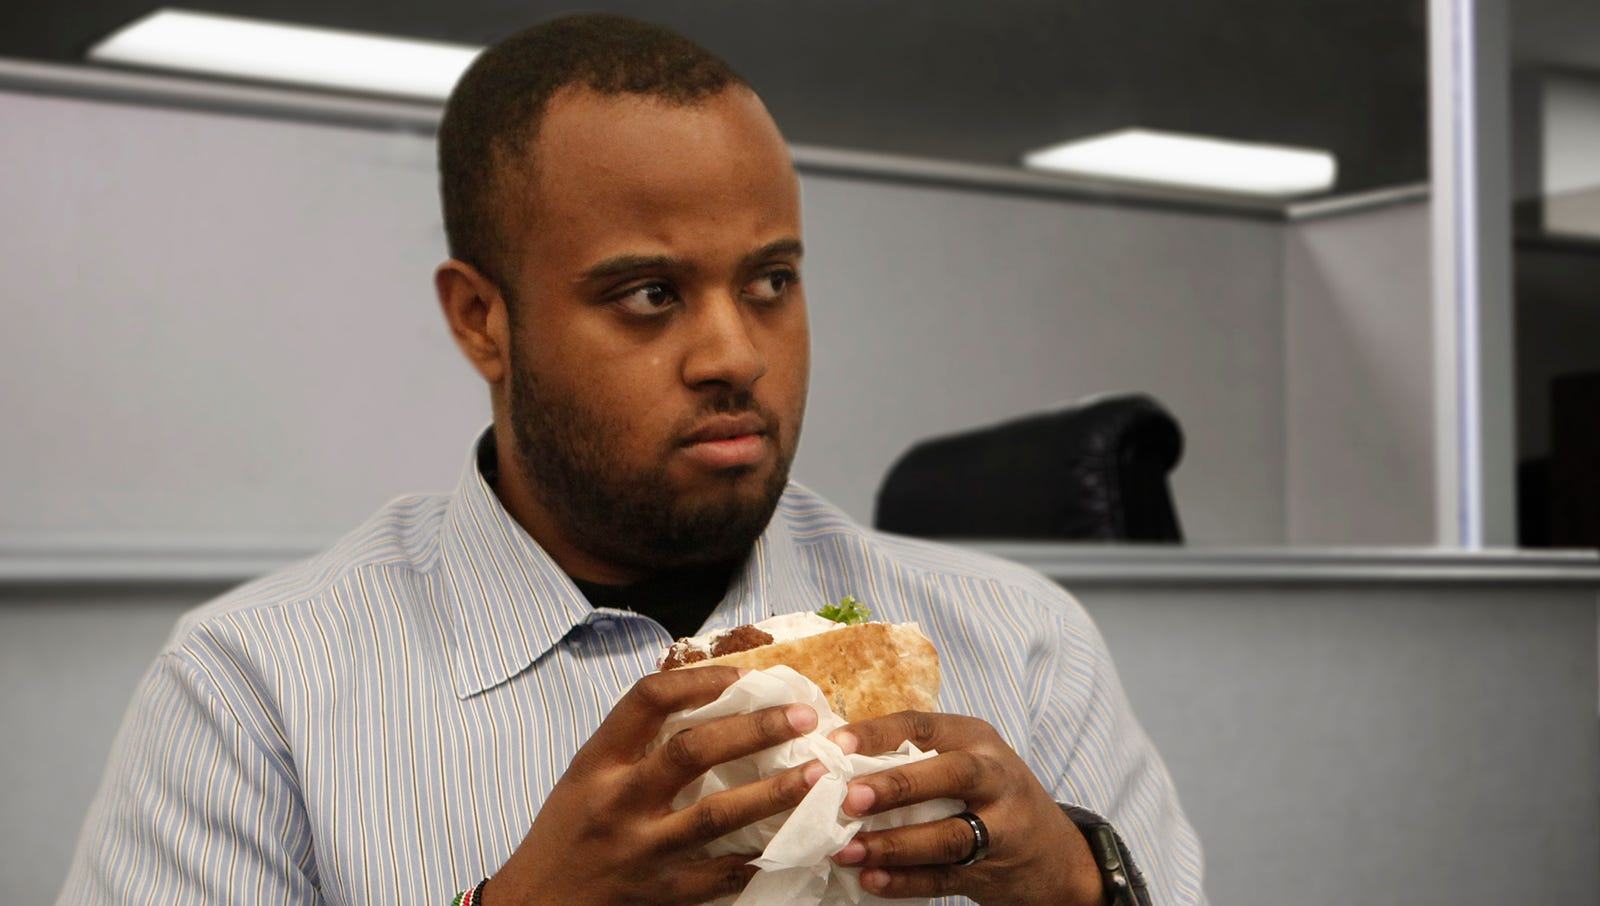 Man To Undergo Extensive Interrogation By Coworkers About Where He Got Falafel